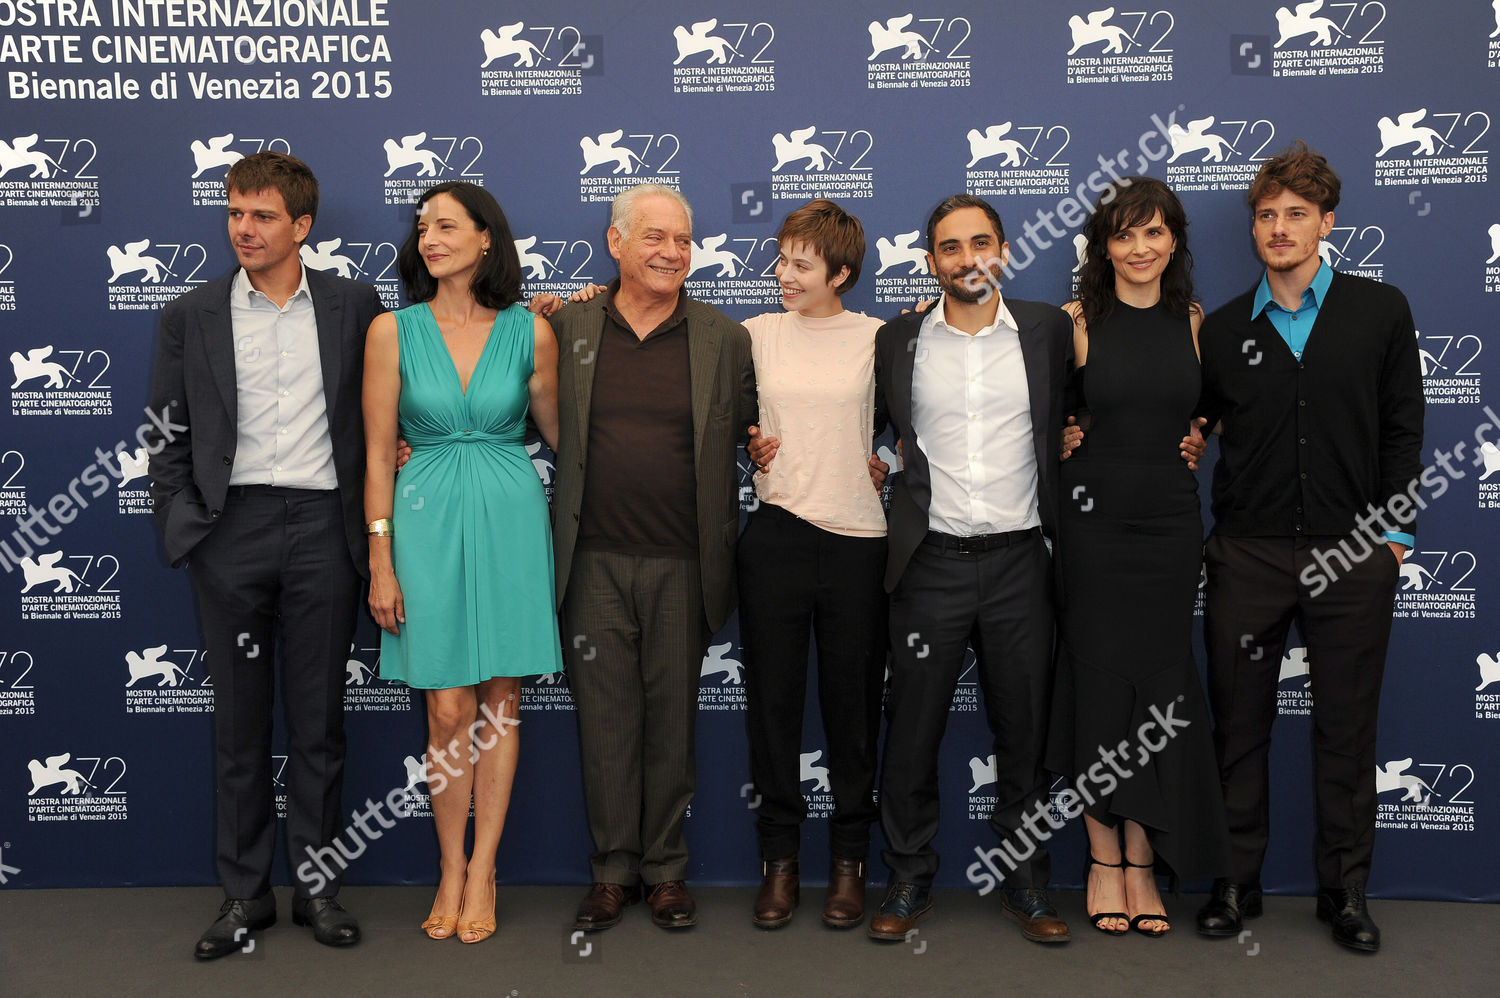 ec7b897a2 'The Wait' photocall, 72nd Venice Film Festival, Italy Stock Image by  Alberto Terenghi for editorial use, Sep 5, 2015